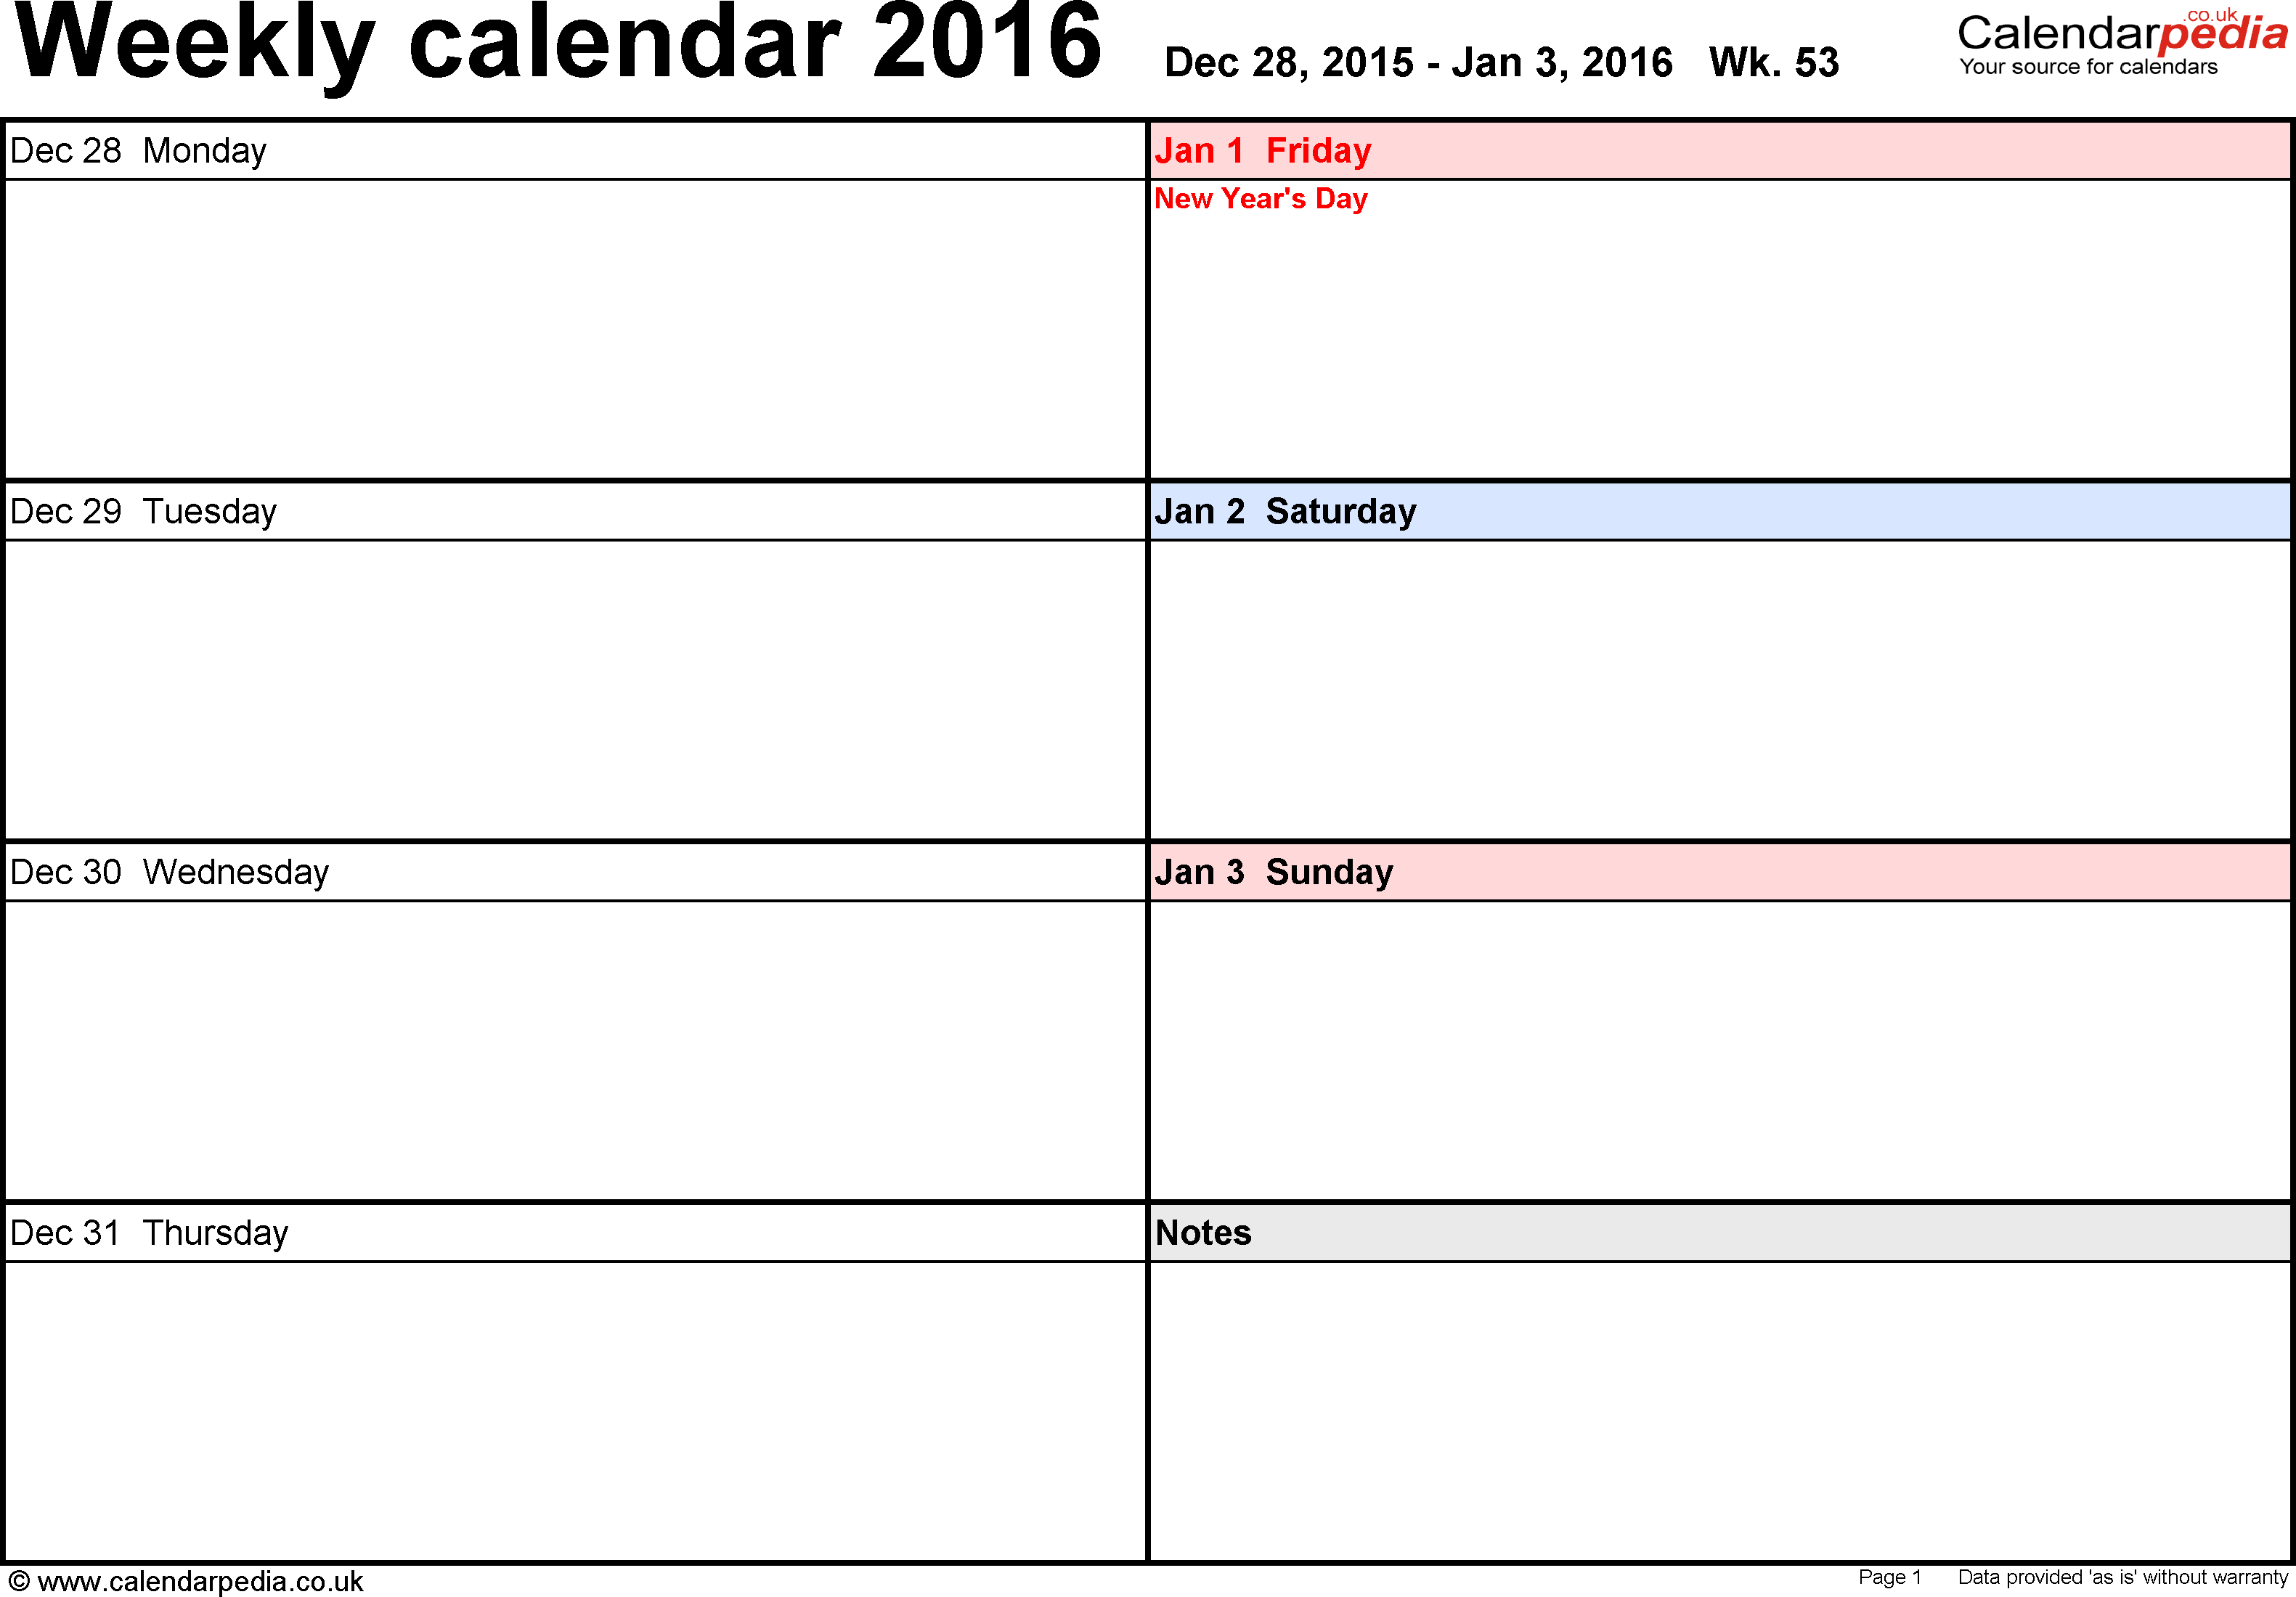 Excel Template 6: Weekly Calendar 2016, Landscape Orientation, Days  Horizontally, 53 Pages